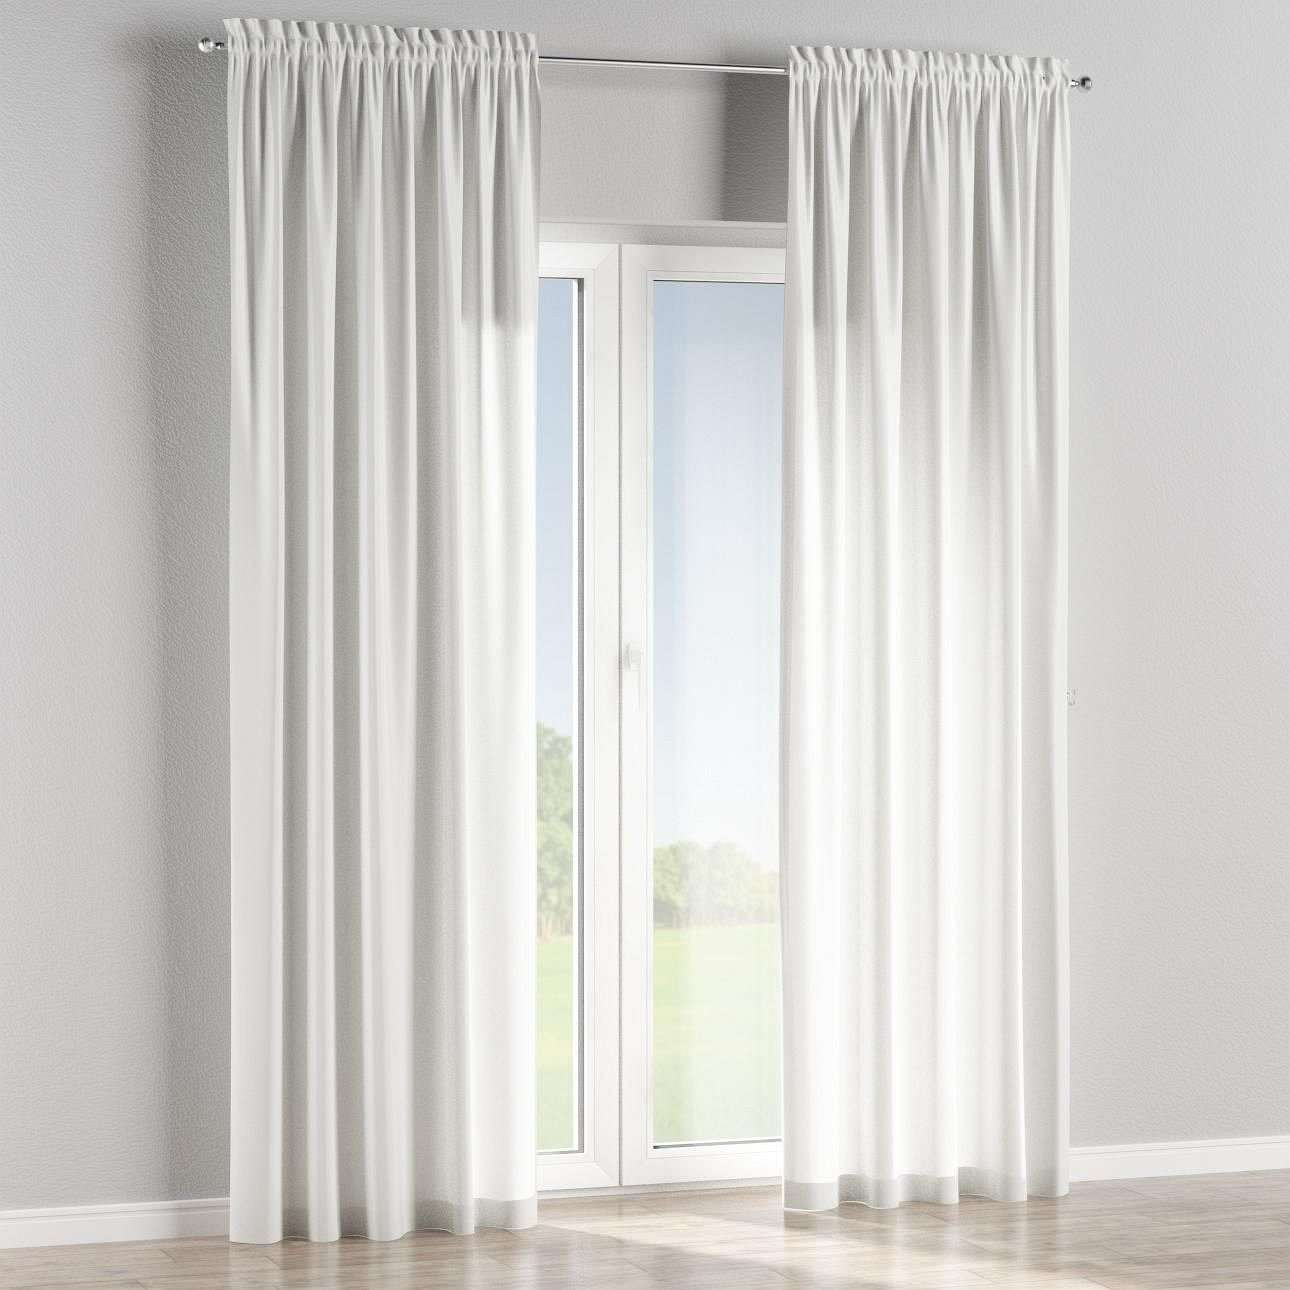 Slot and frill lined curtains in collection Mirella, fabric: 141-12